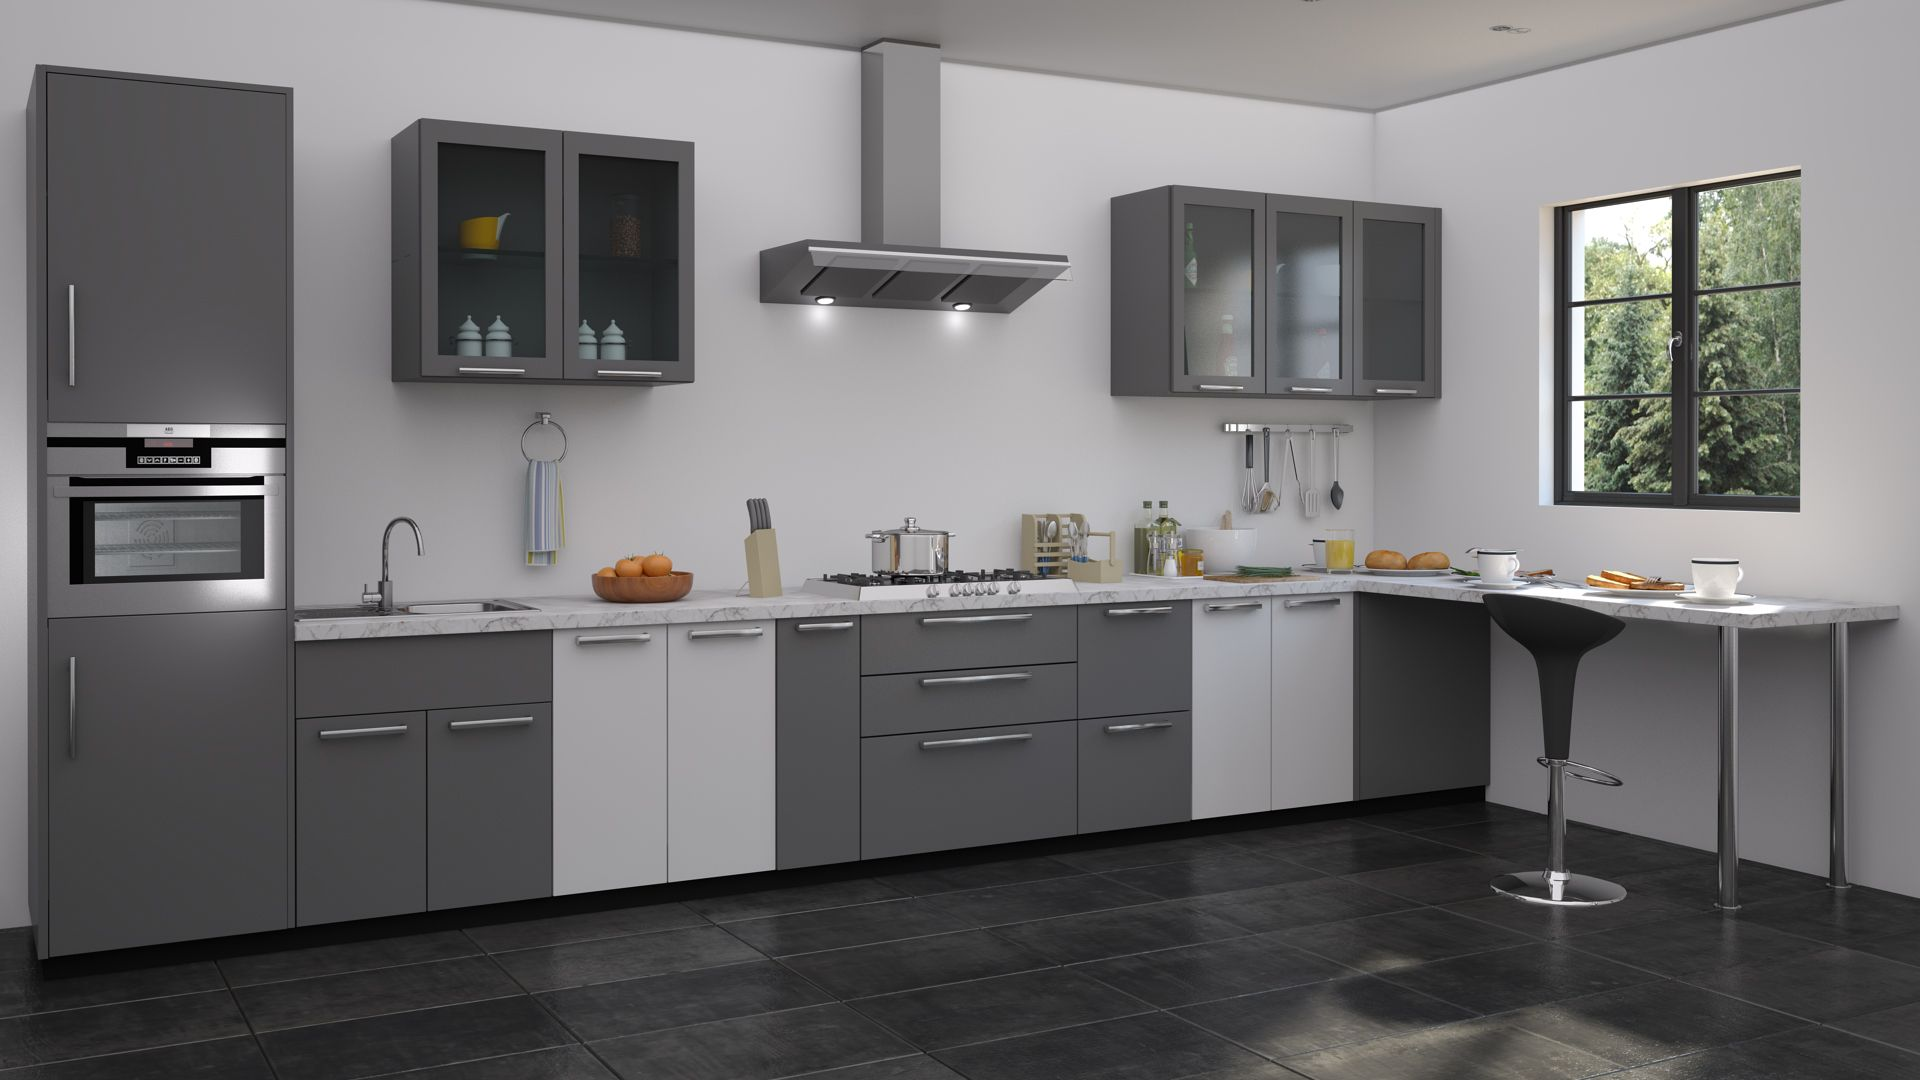 The New Monochrome Modular Kitchen Collection. Create Your Own Timeless  Modular Kitchen In Classy Shades